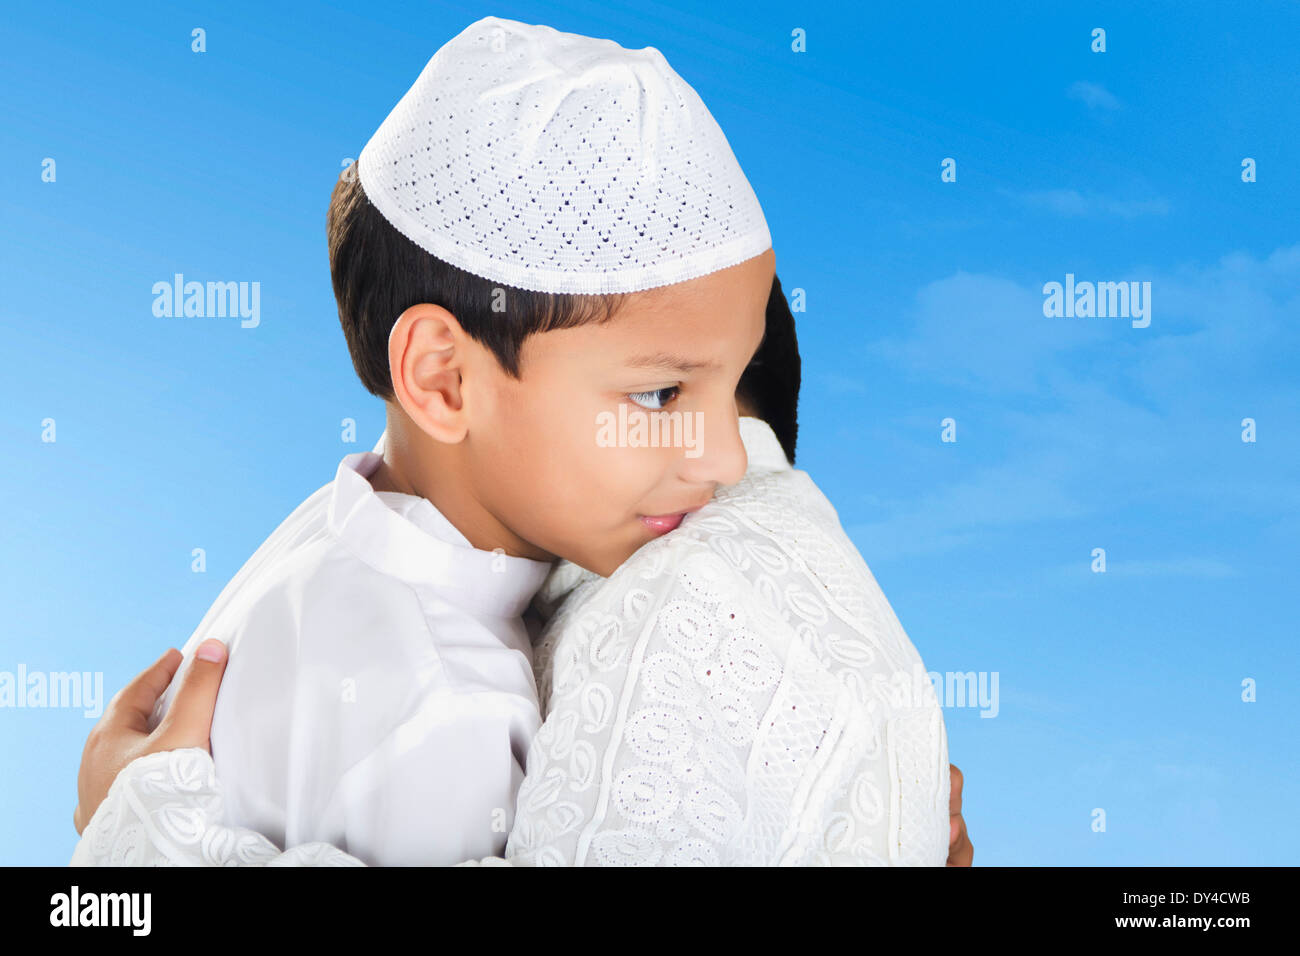 Indian Muslim Kids Congratulation Eath other - Stock Image